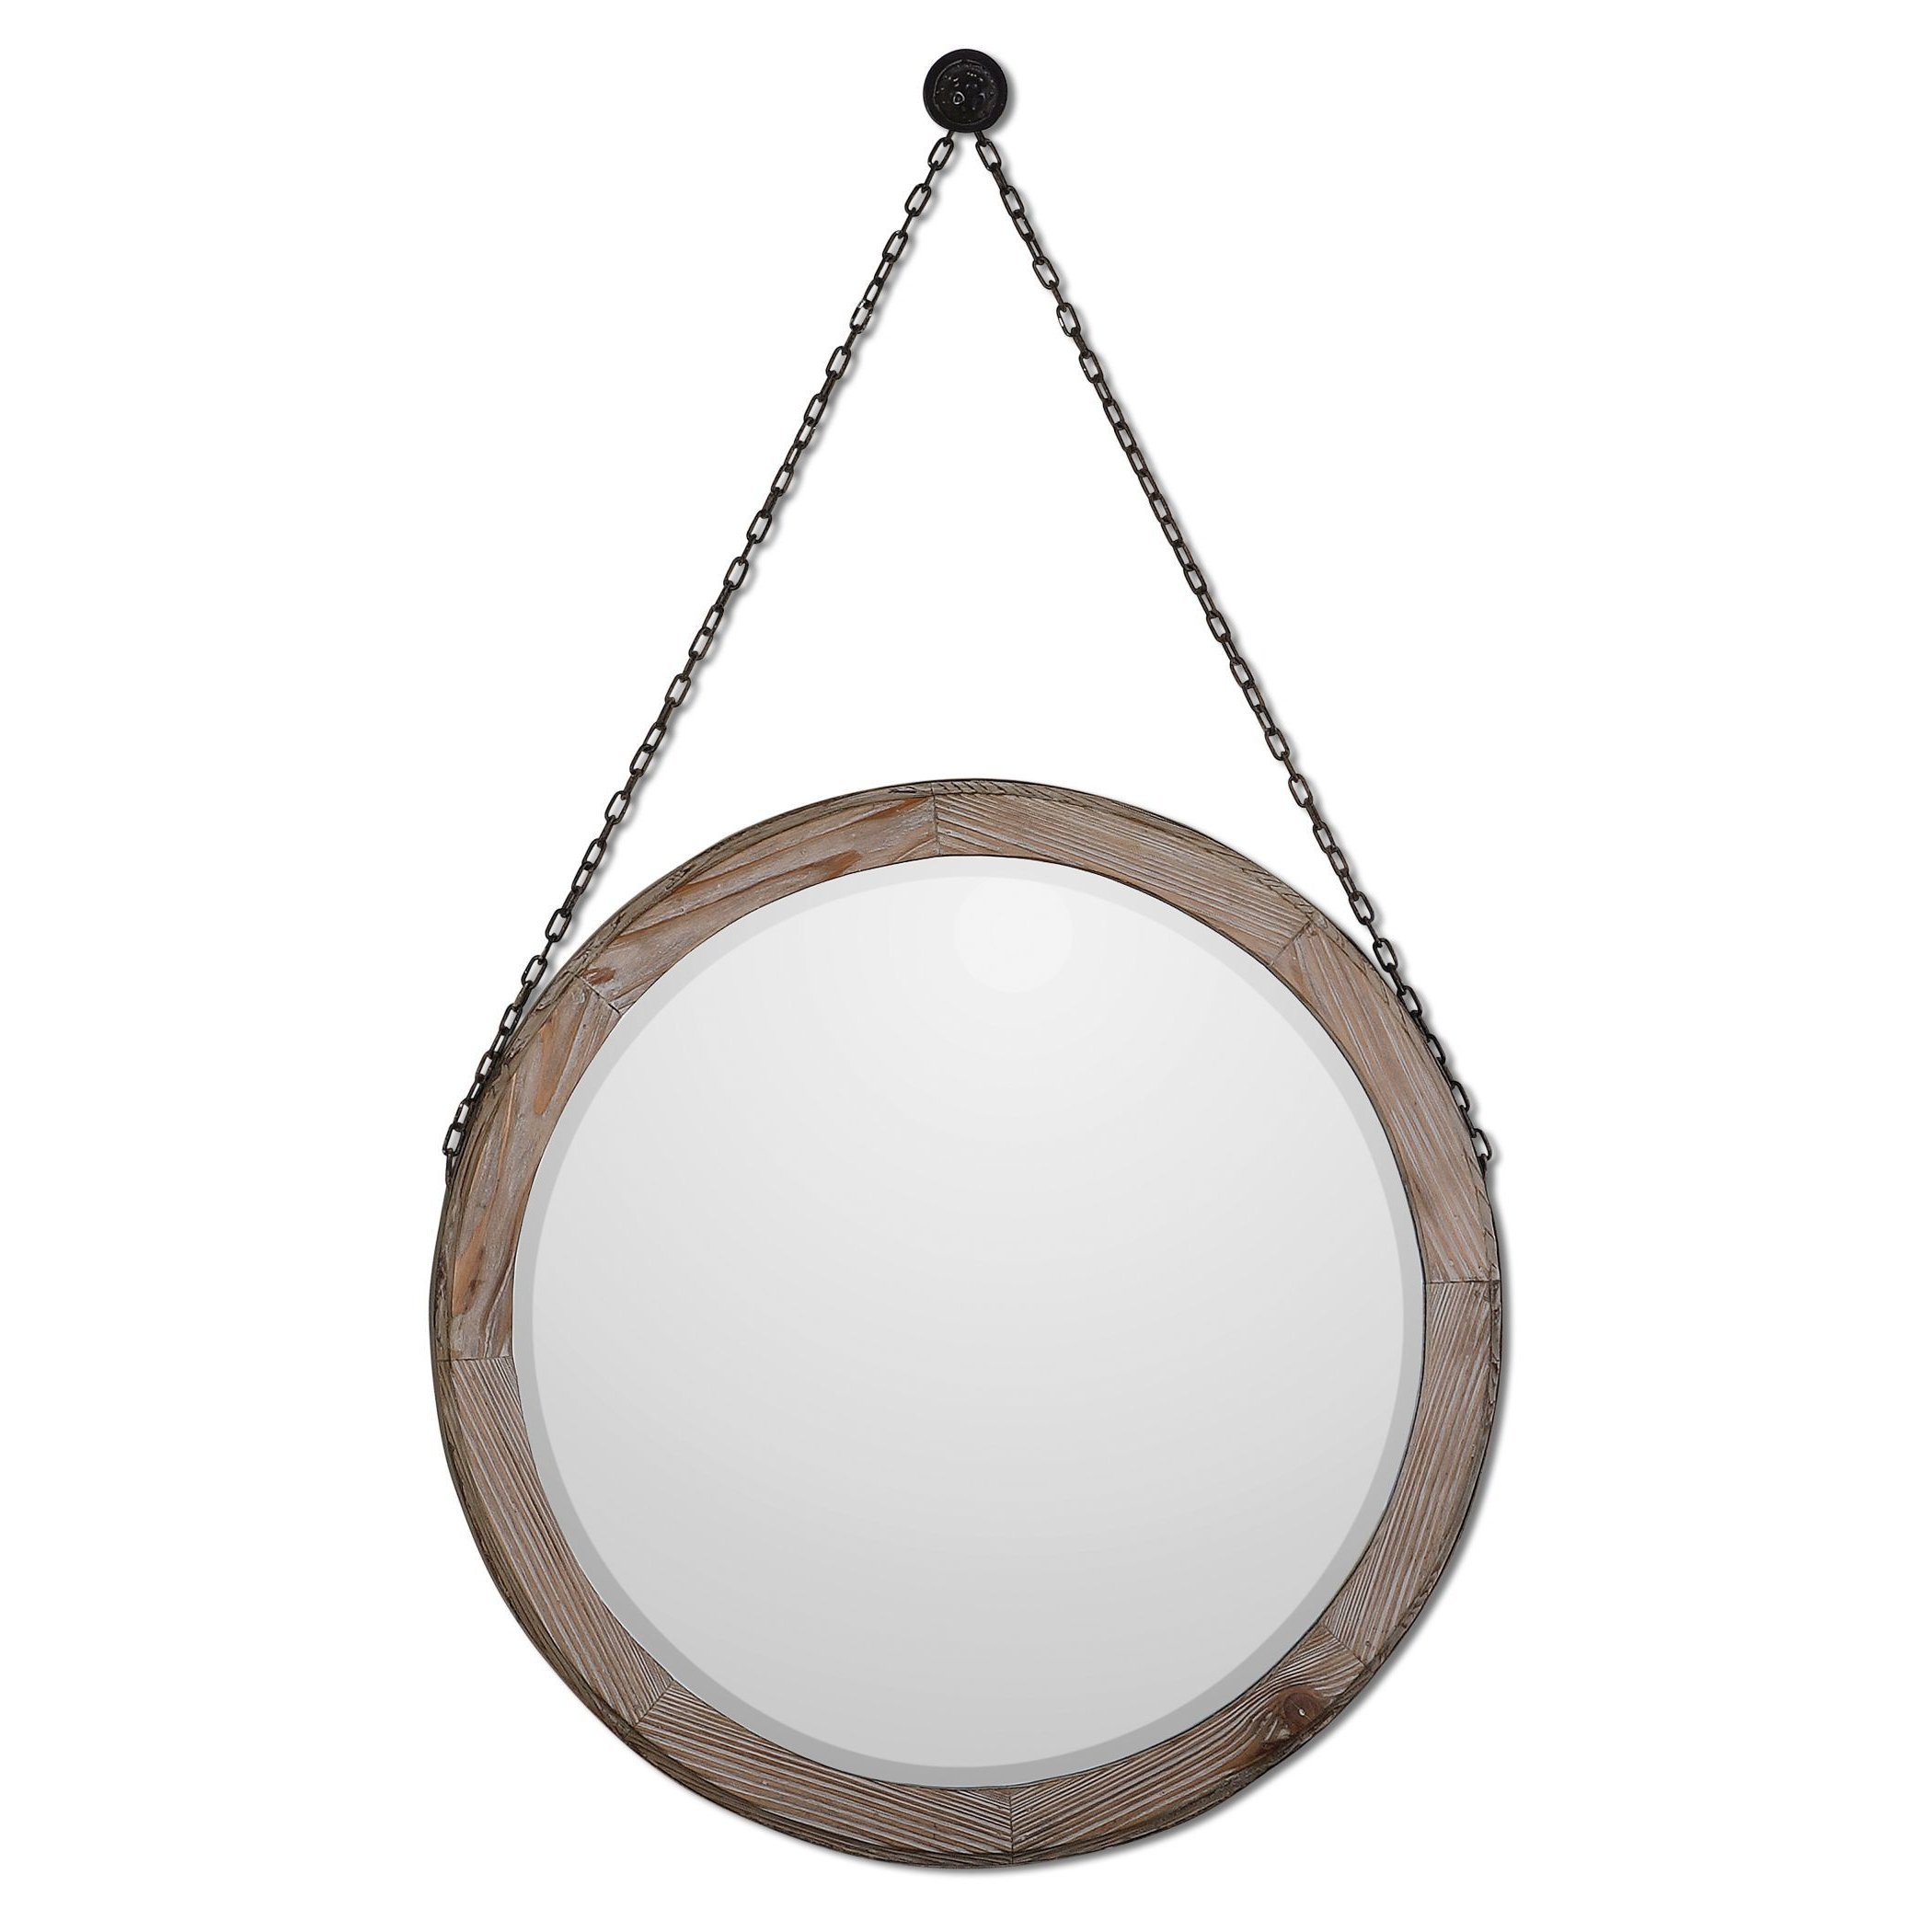 Laurel Foundry Modern & Contemporary Accent Mirrors For Trendy Round Wood Wall Mirror (View 19 of 20)